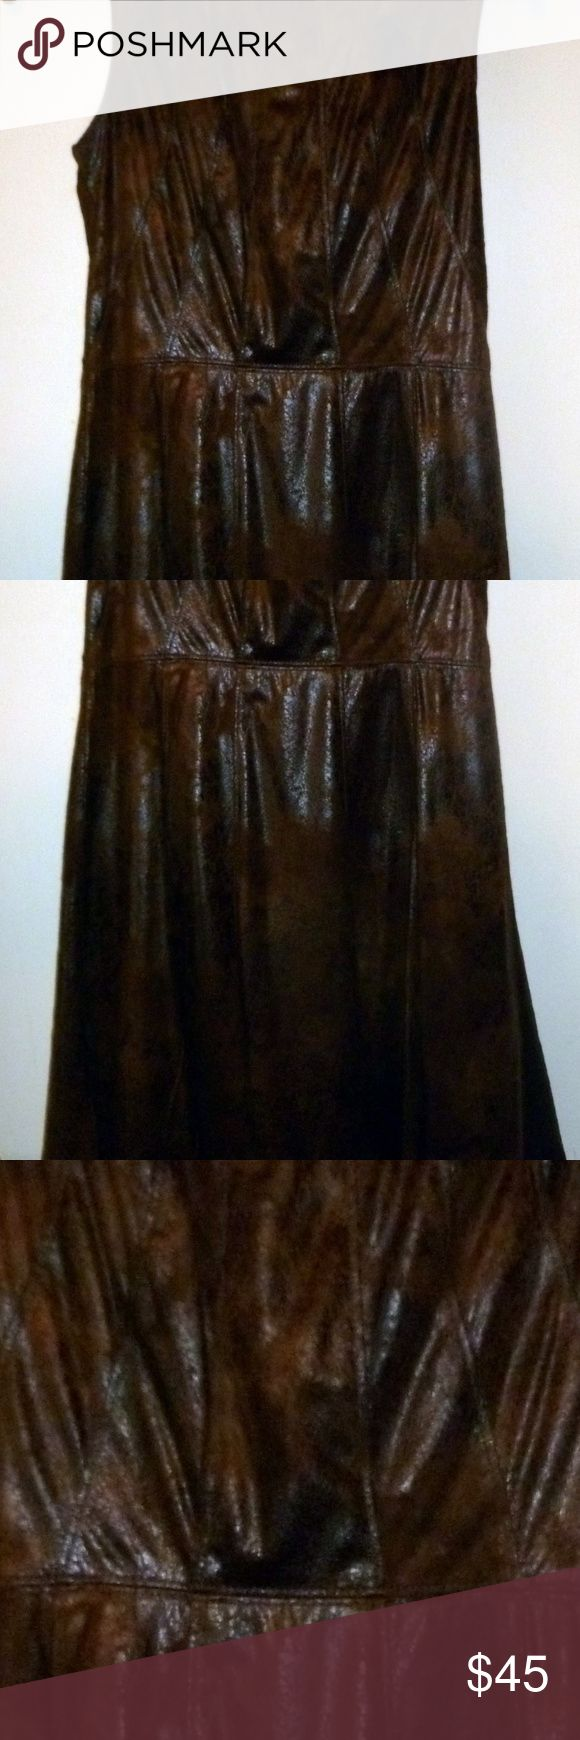 Vince Camuto Dress in Woman SZ 2 A  BNWT beautiful faux suede Vince Camuto brown dress in size Petite 2 that goes about to the knees or slightly above.. It does have a lining, with zip up back. Vince Camuto Dresses Midi